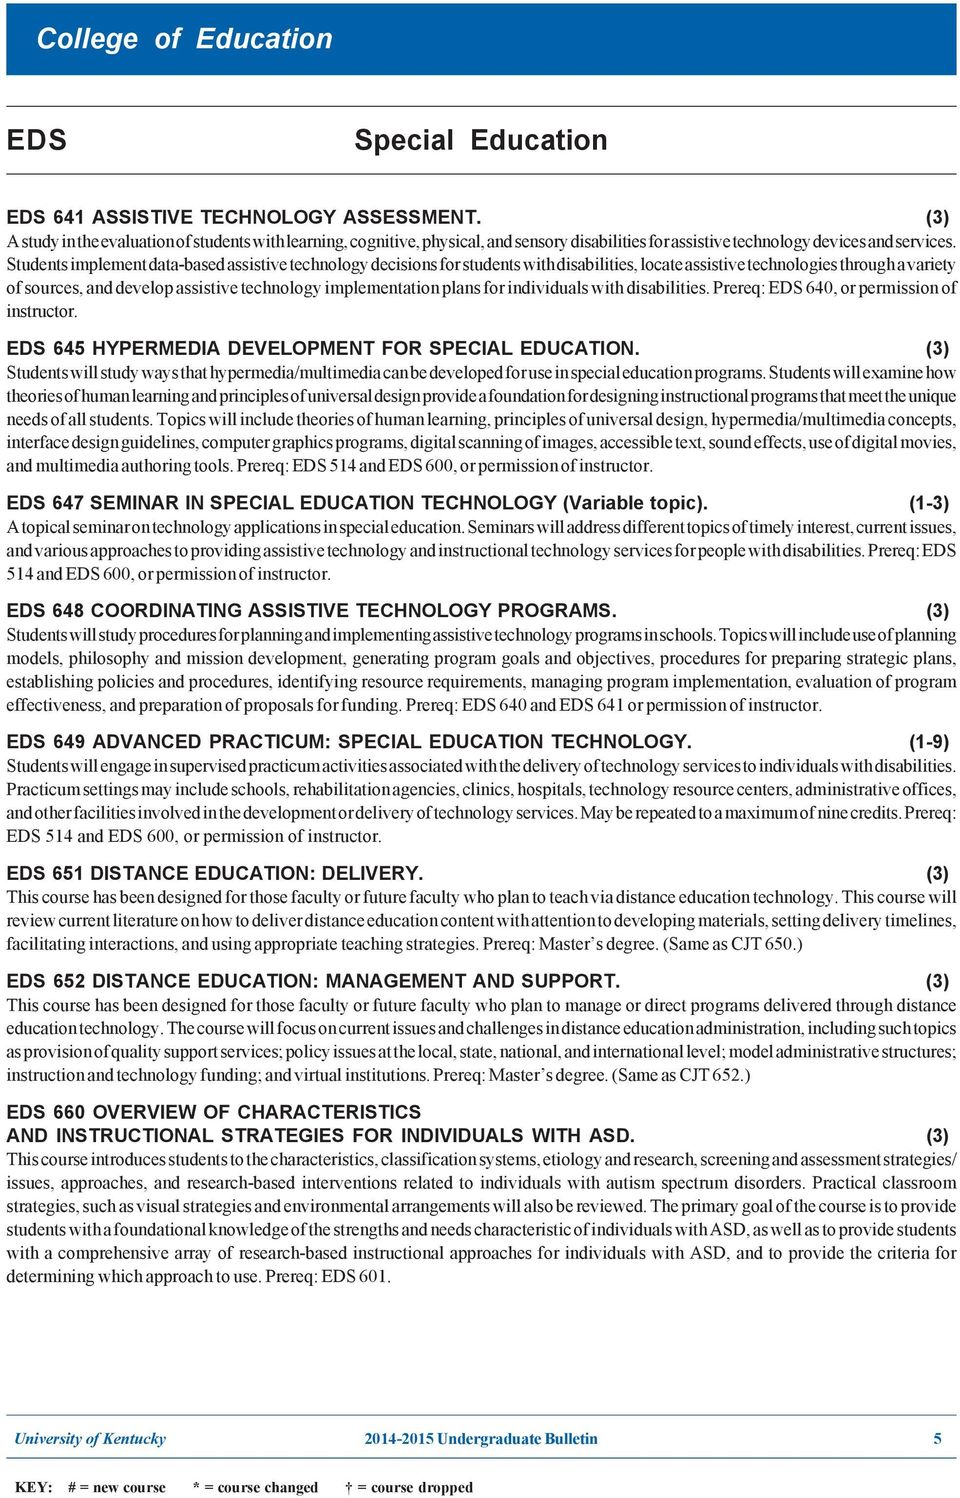 implementation plans for individuals with disabilities. Prereq: 640, or permission of instructor. 645 HYPERMEDIA DEVELOPMENT FOR SPECIAL EDUCATION.